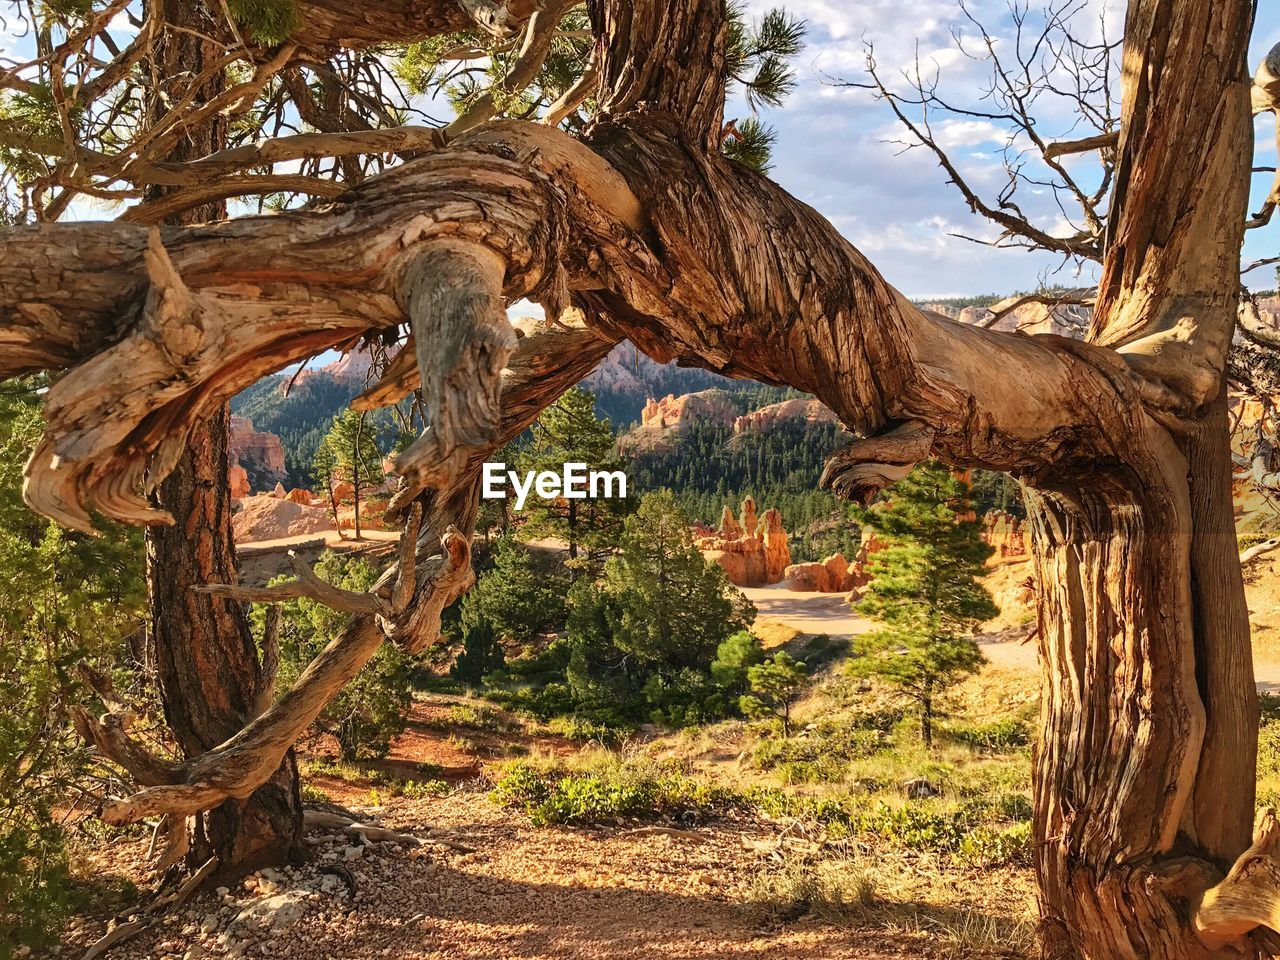 tree, nature, tranquility, growth, rock - object, no people, beauty in nature, tree trunk, tranquil scene, day, plant, outdoors, scenics, branch, mountain, sky